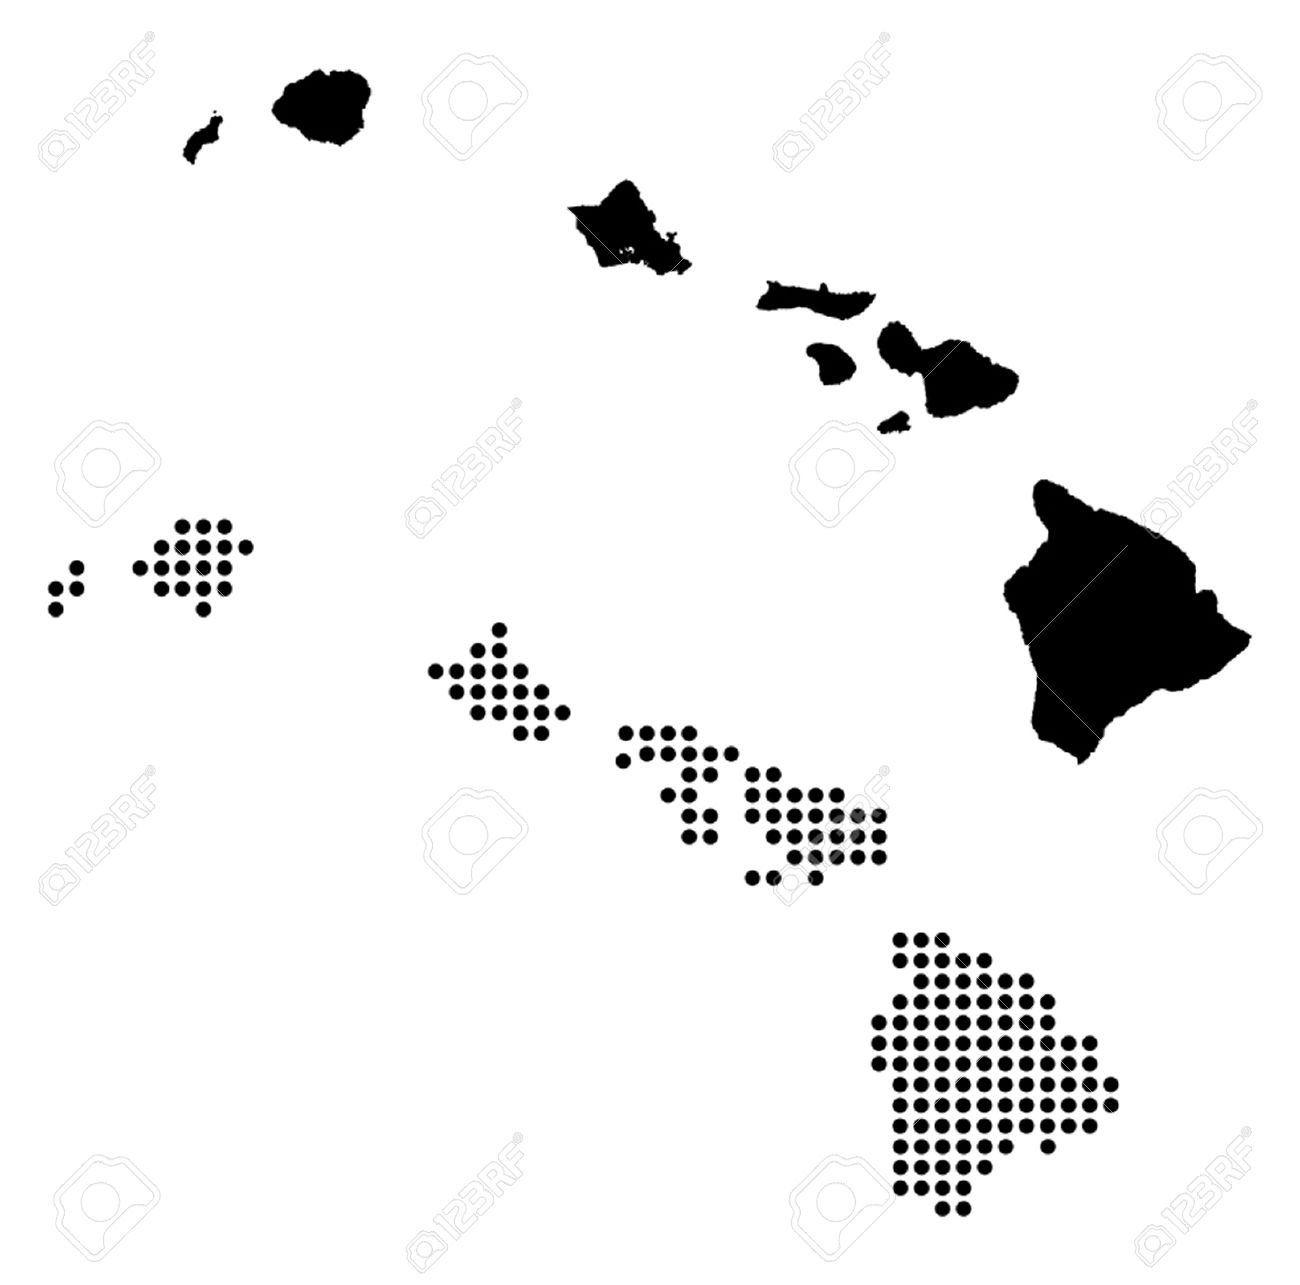 Dotted And Silhouette Hawaii Map Royalty Free Cliparts Vectors And